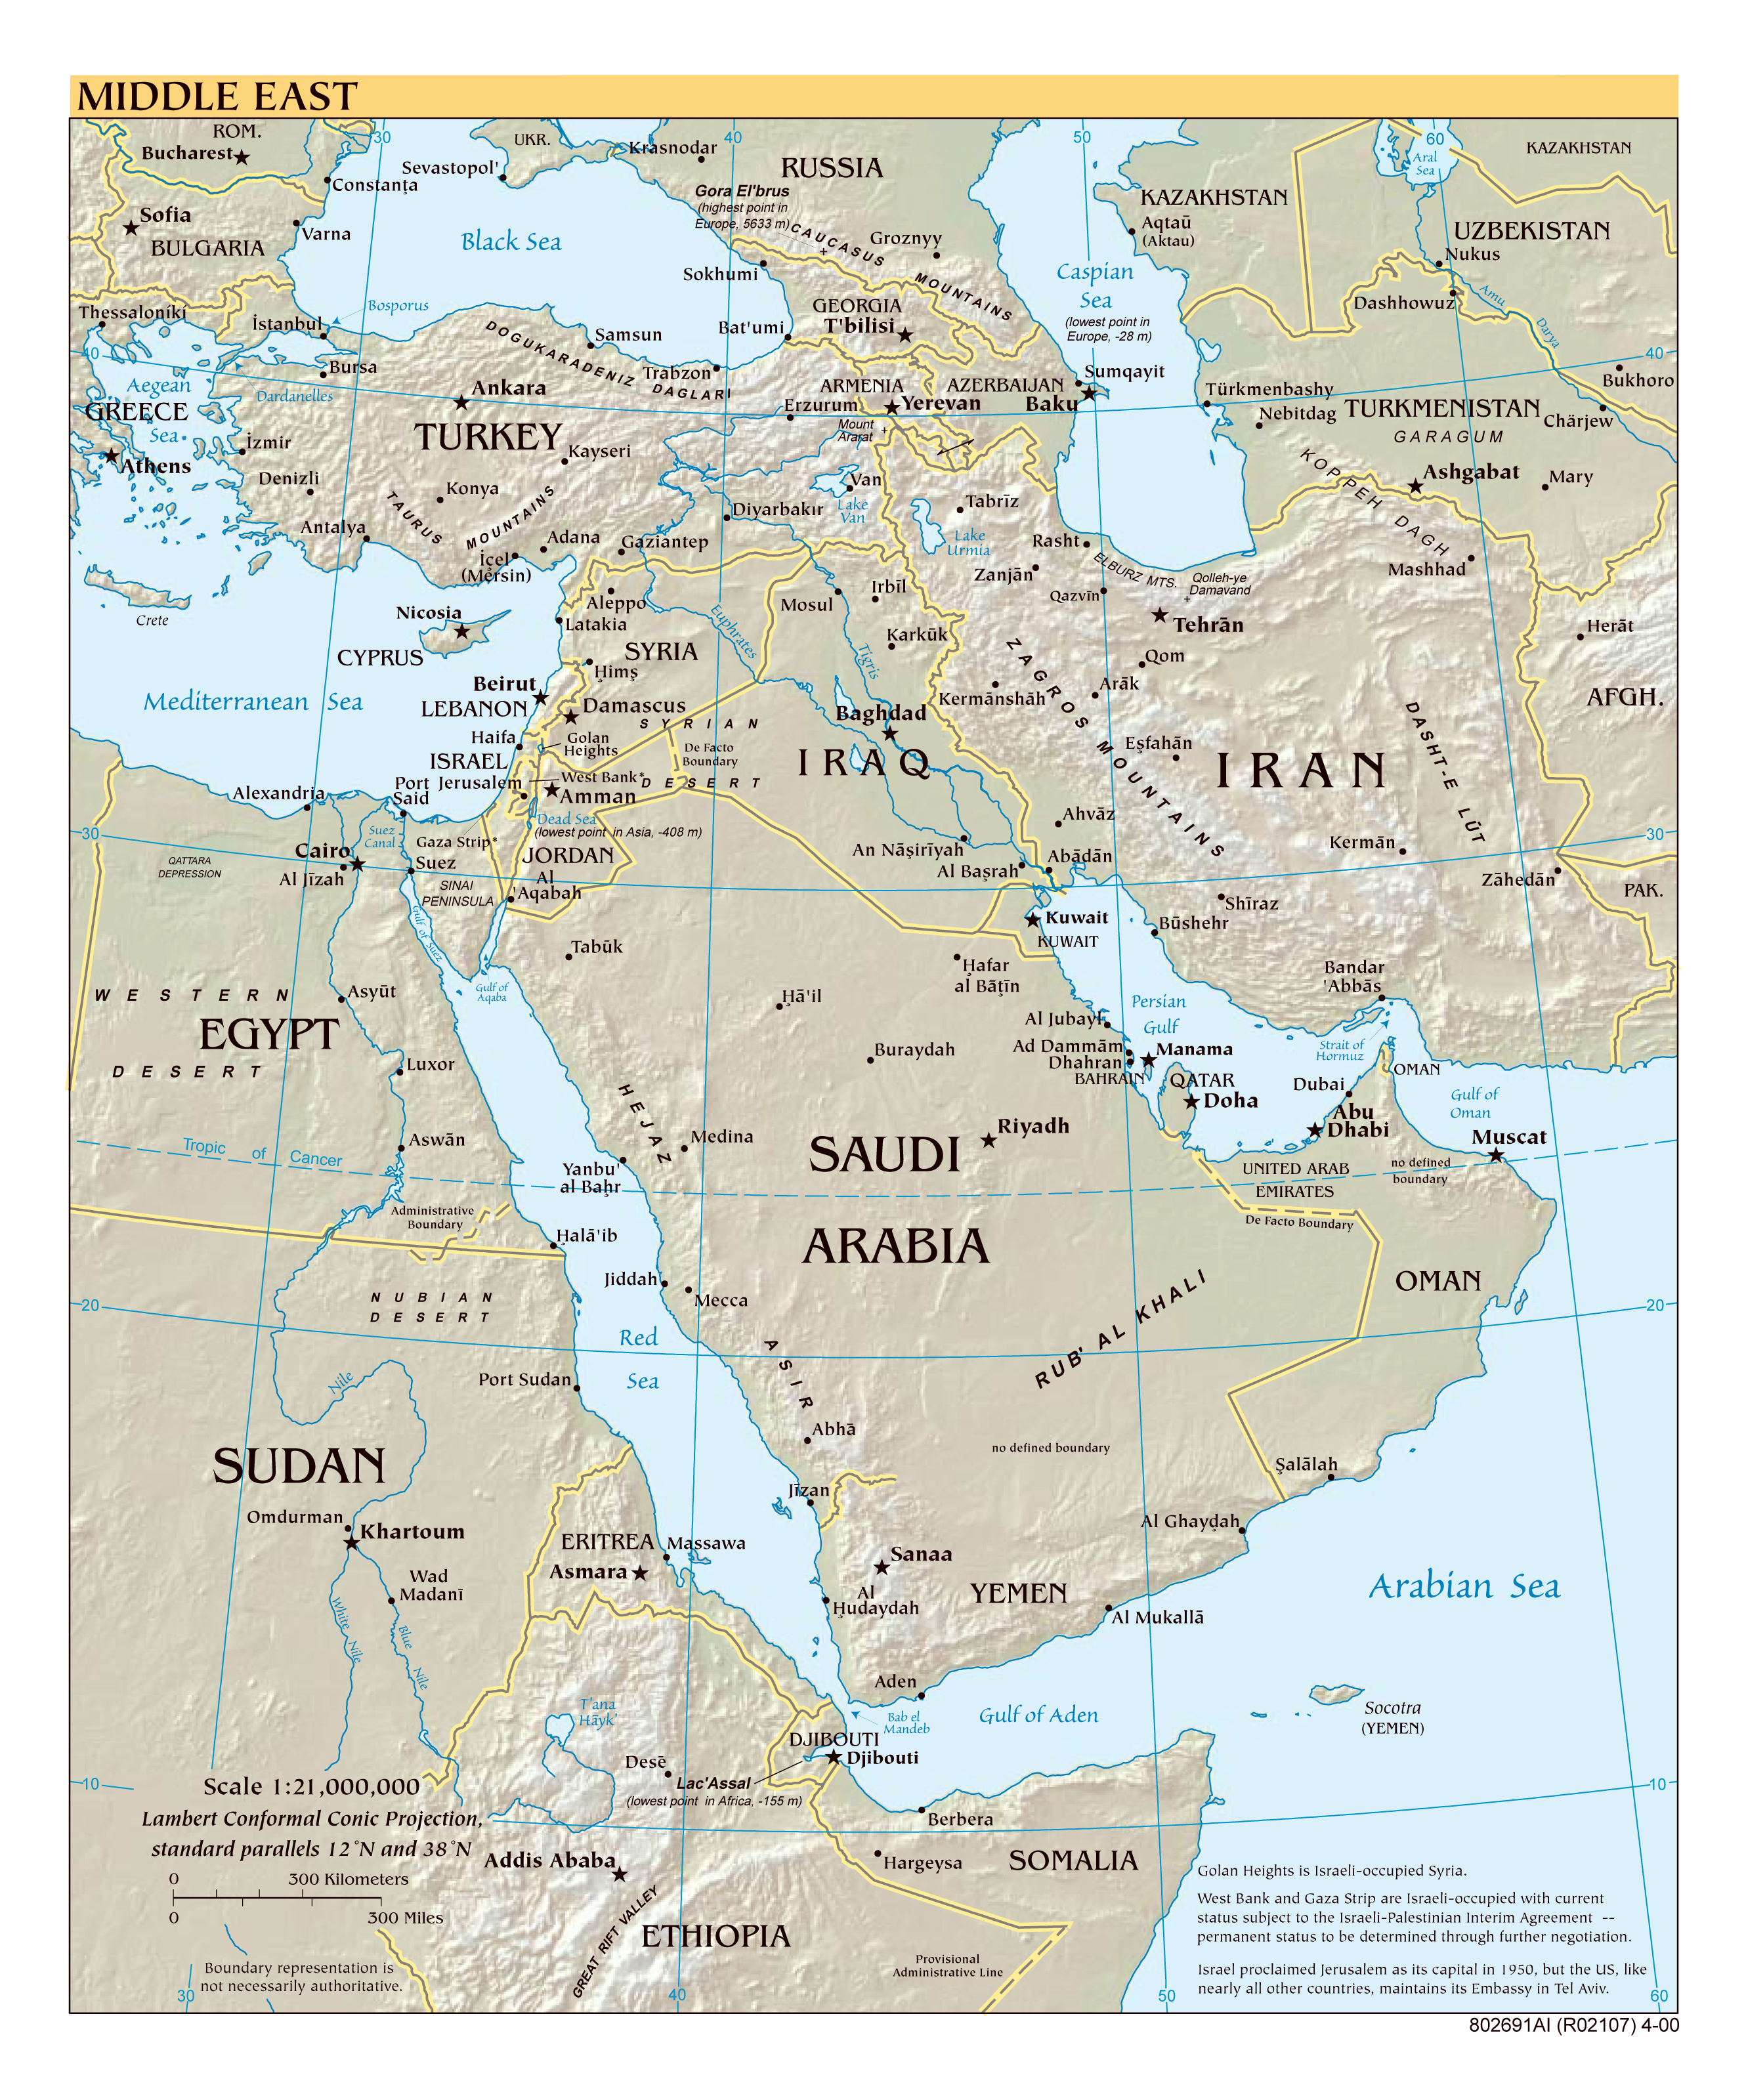 Large scale political map of the Middle East with relief major